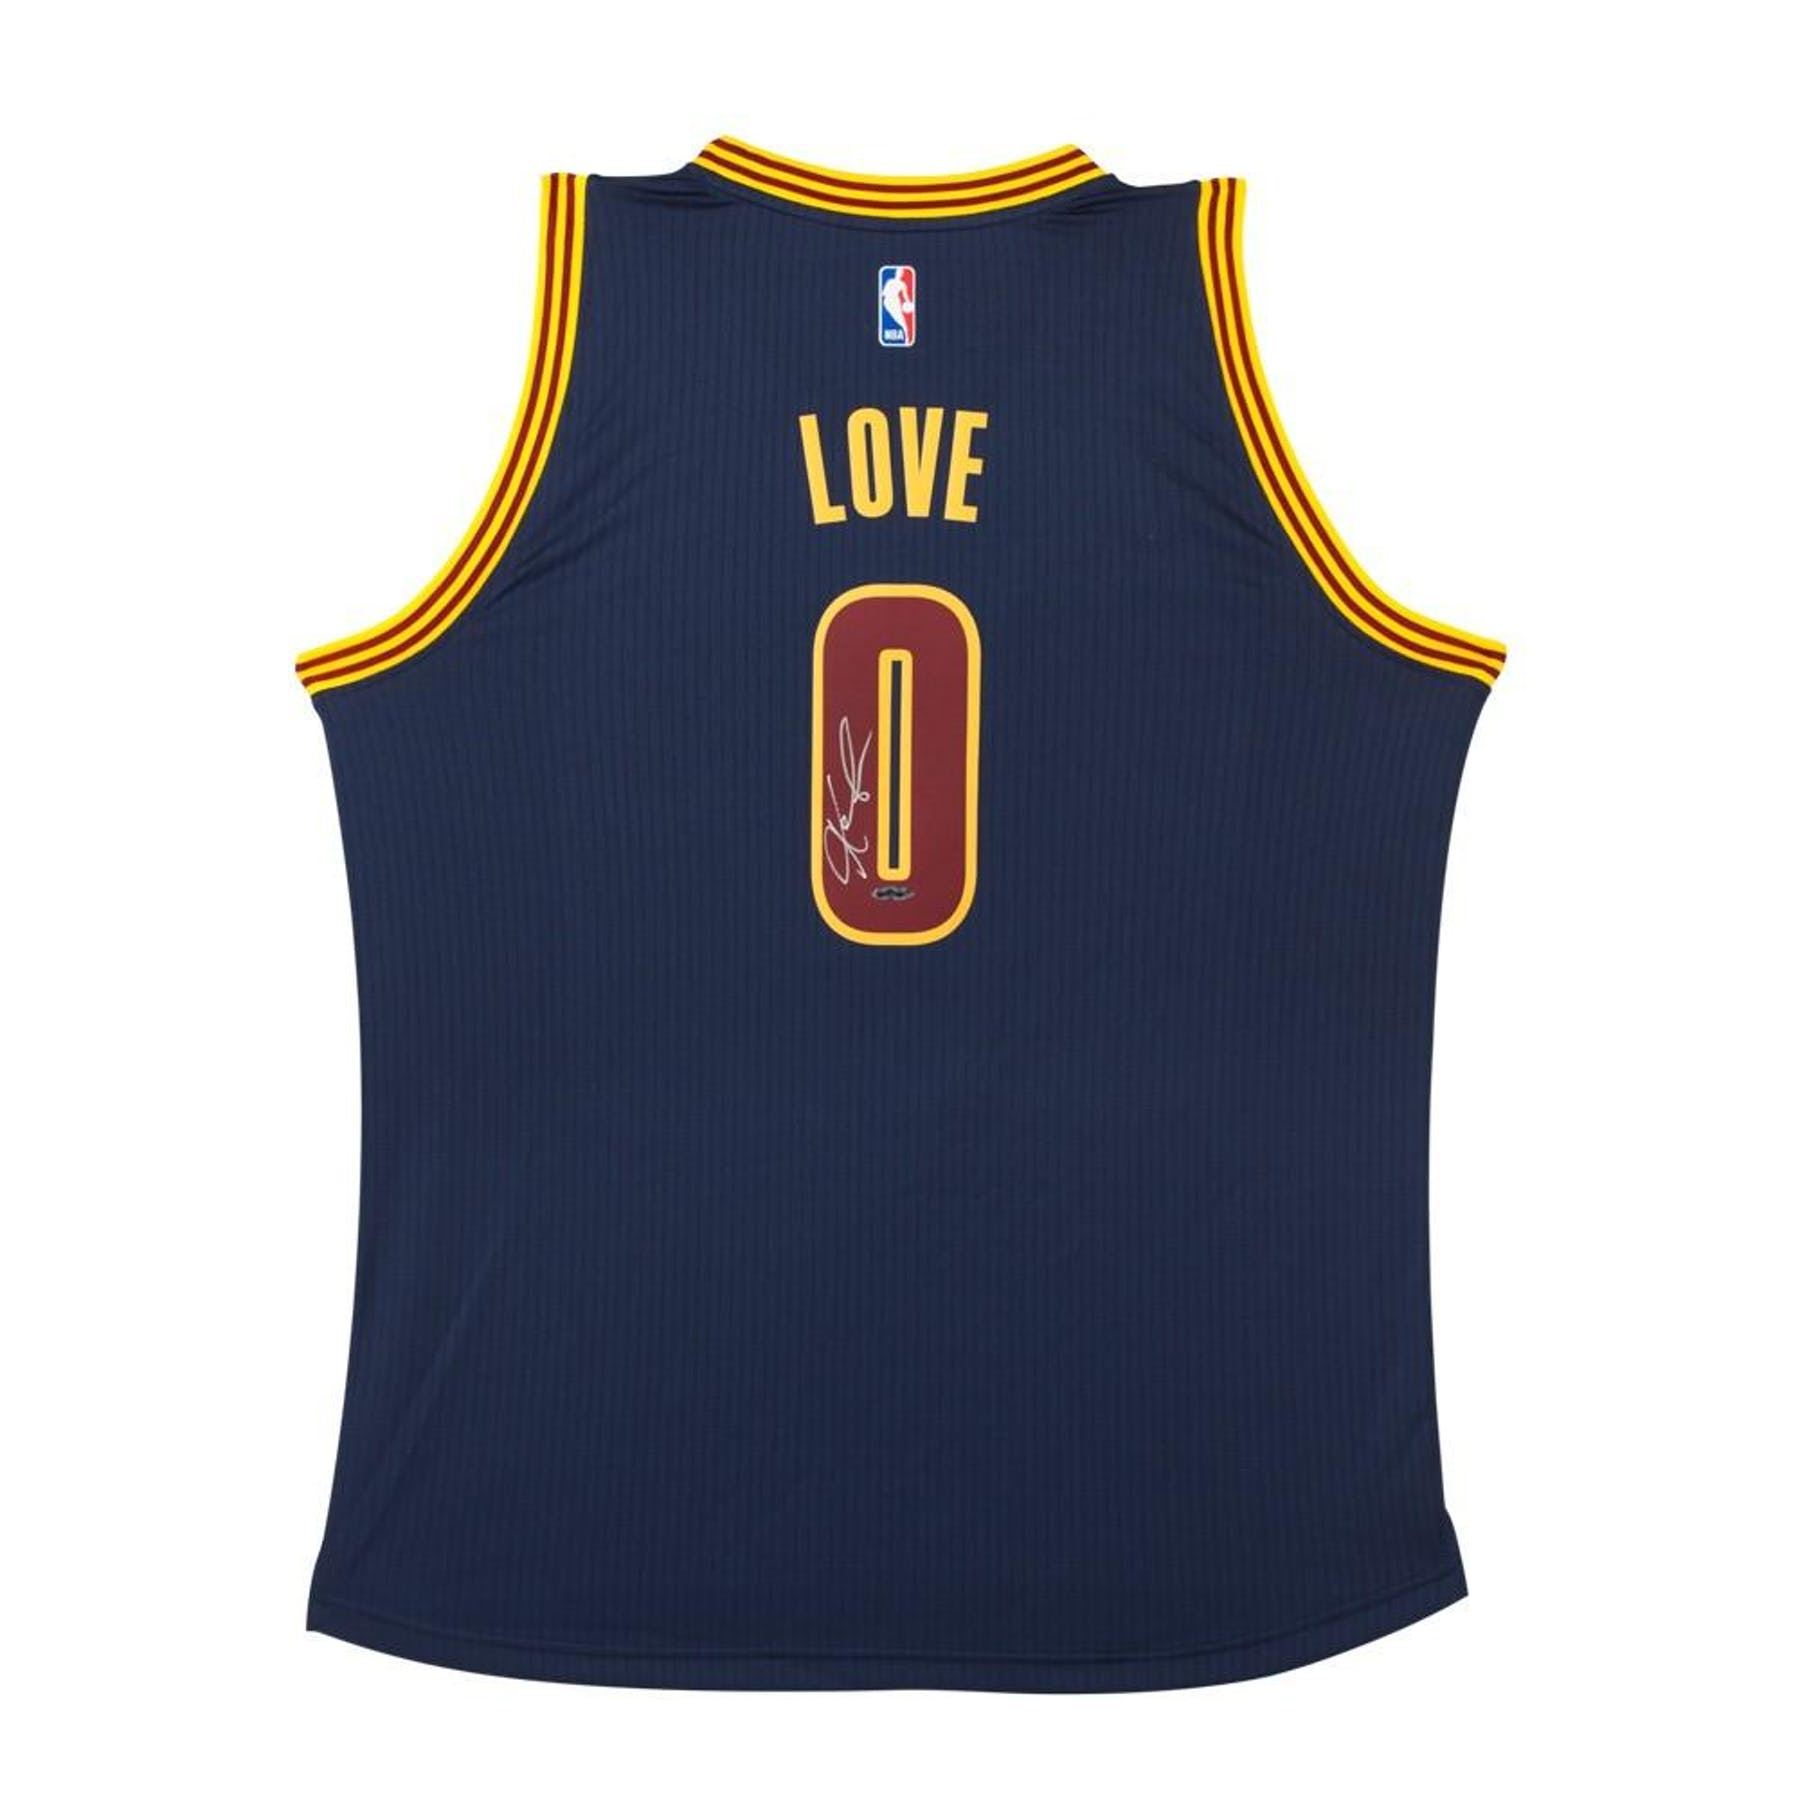 sports shoes 0f226 92b27 Kevin Love Autographed Cleveland Cavaliers Alternate Blue Basketball Jersey  UDA